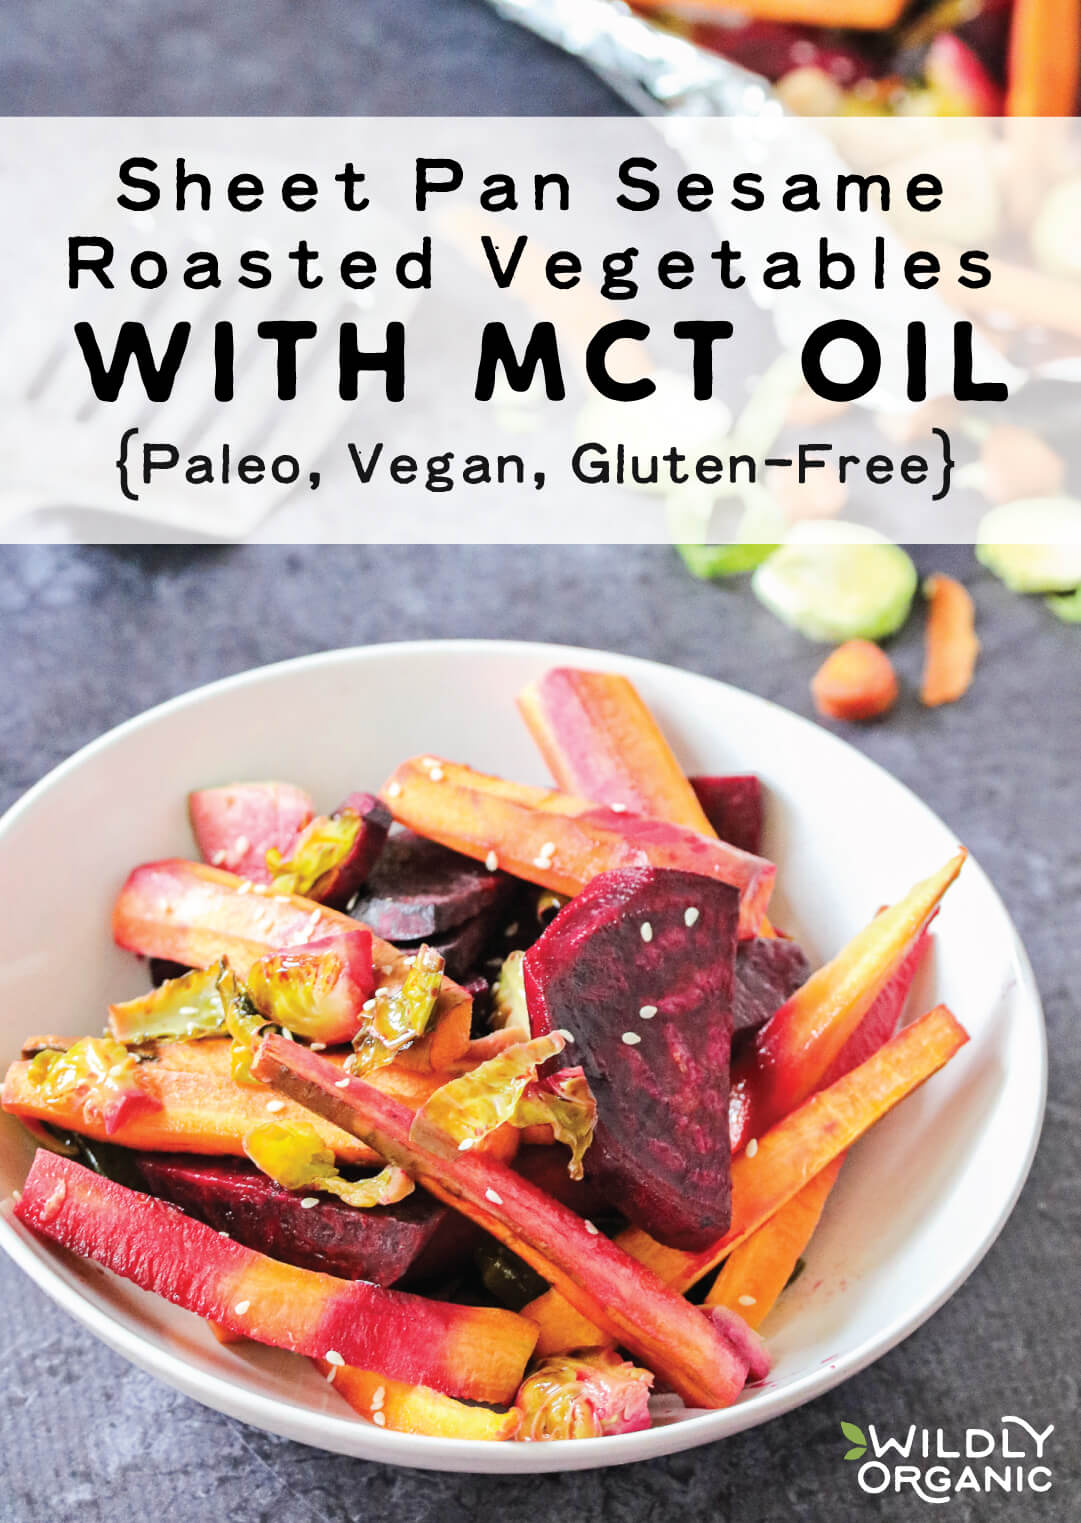 Sheet Pan Sesame Roasted Vegetables with MCT Oil {Paleo, Vegan, Gluten-Free}